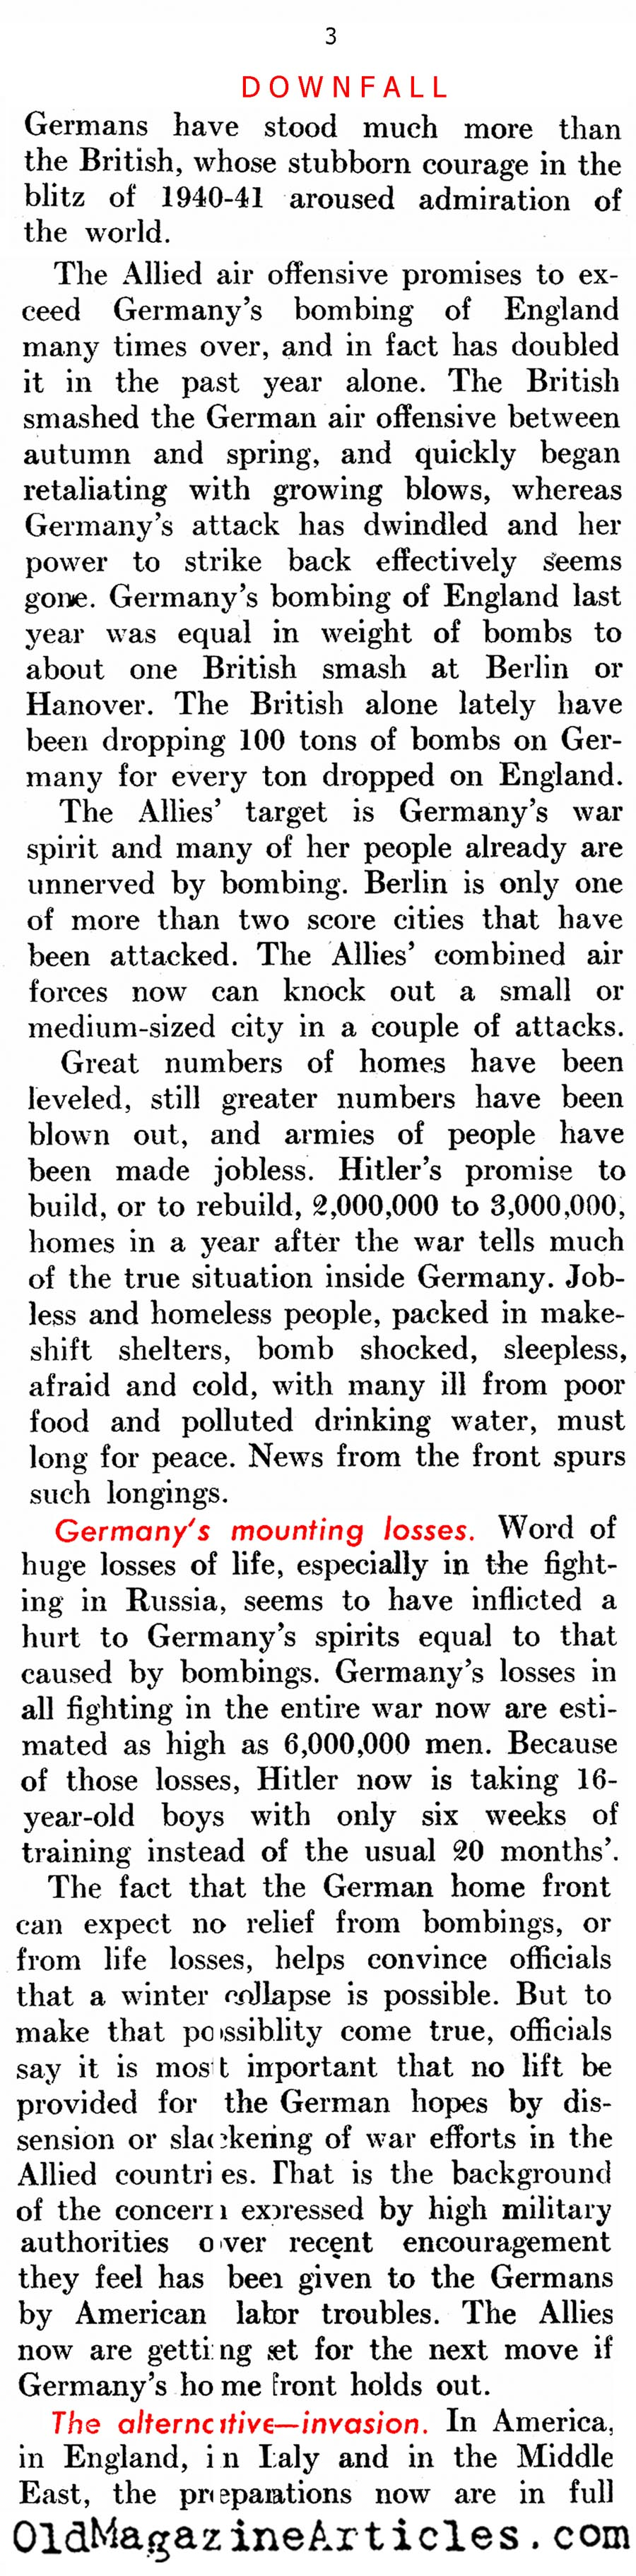 Anticipating Germany's Collapse (United States News, 1944)